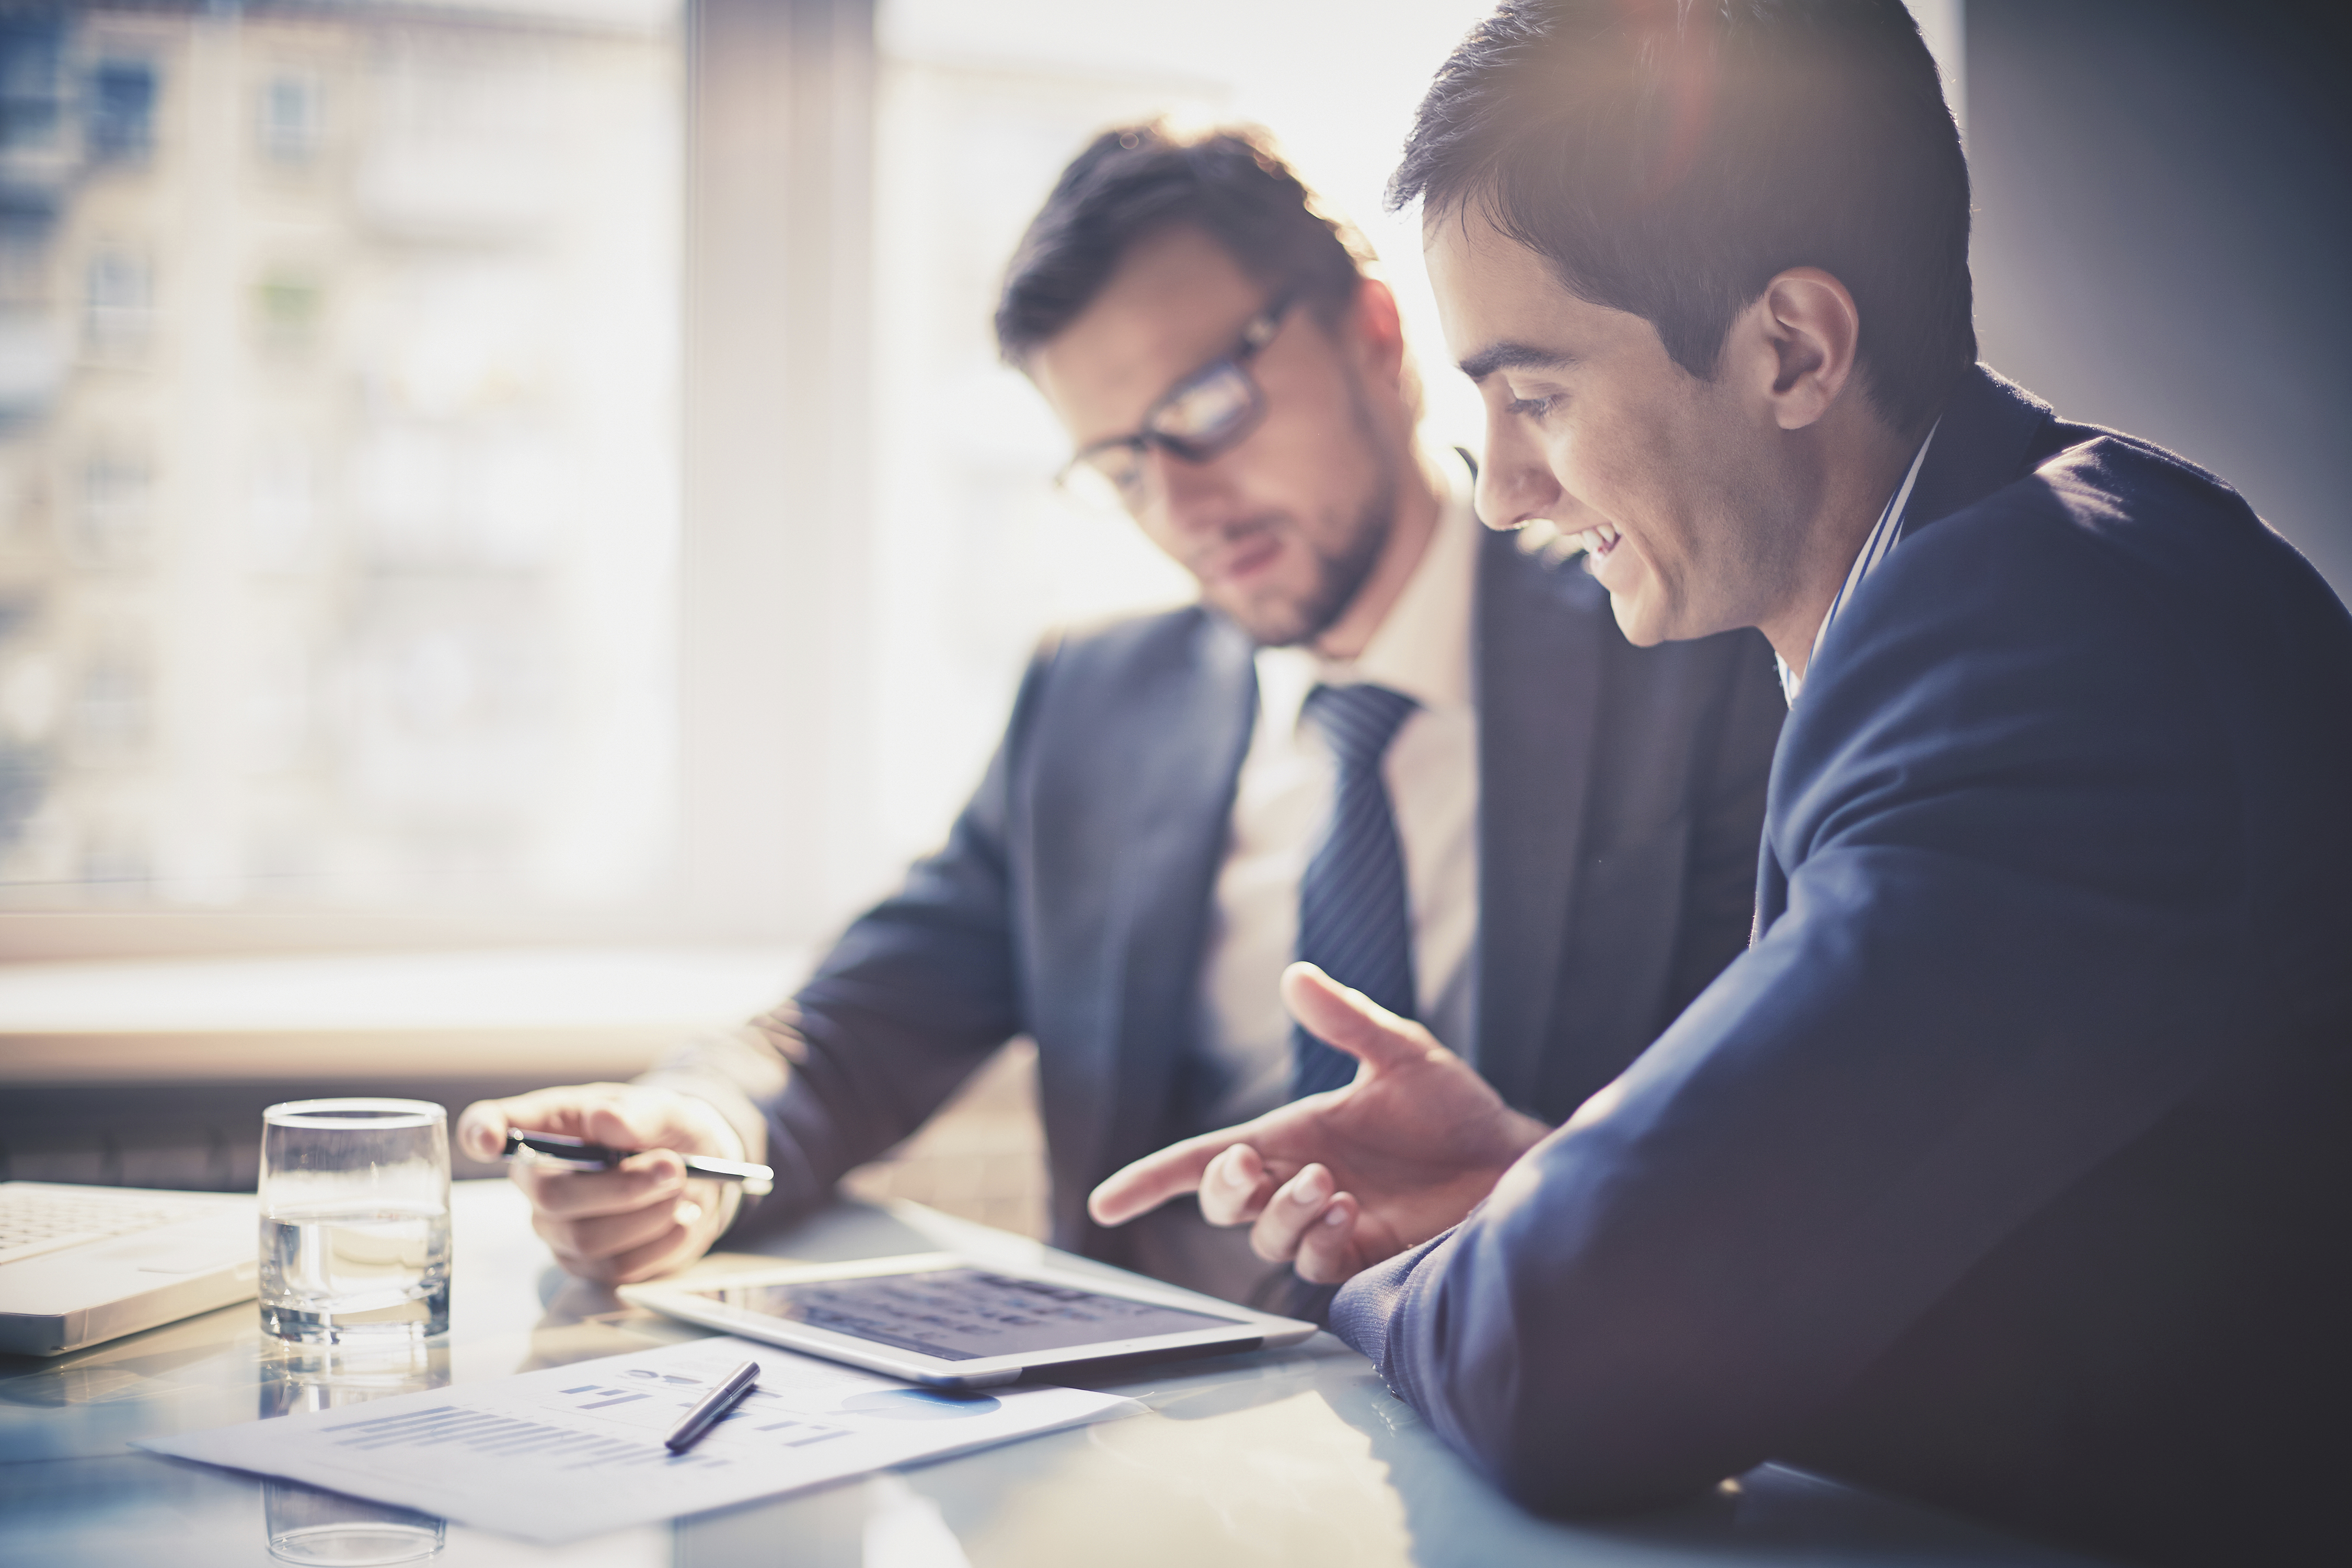 Business owner working with an accountant